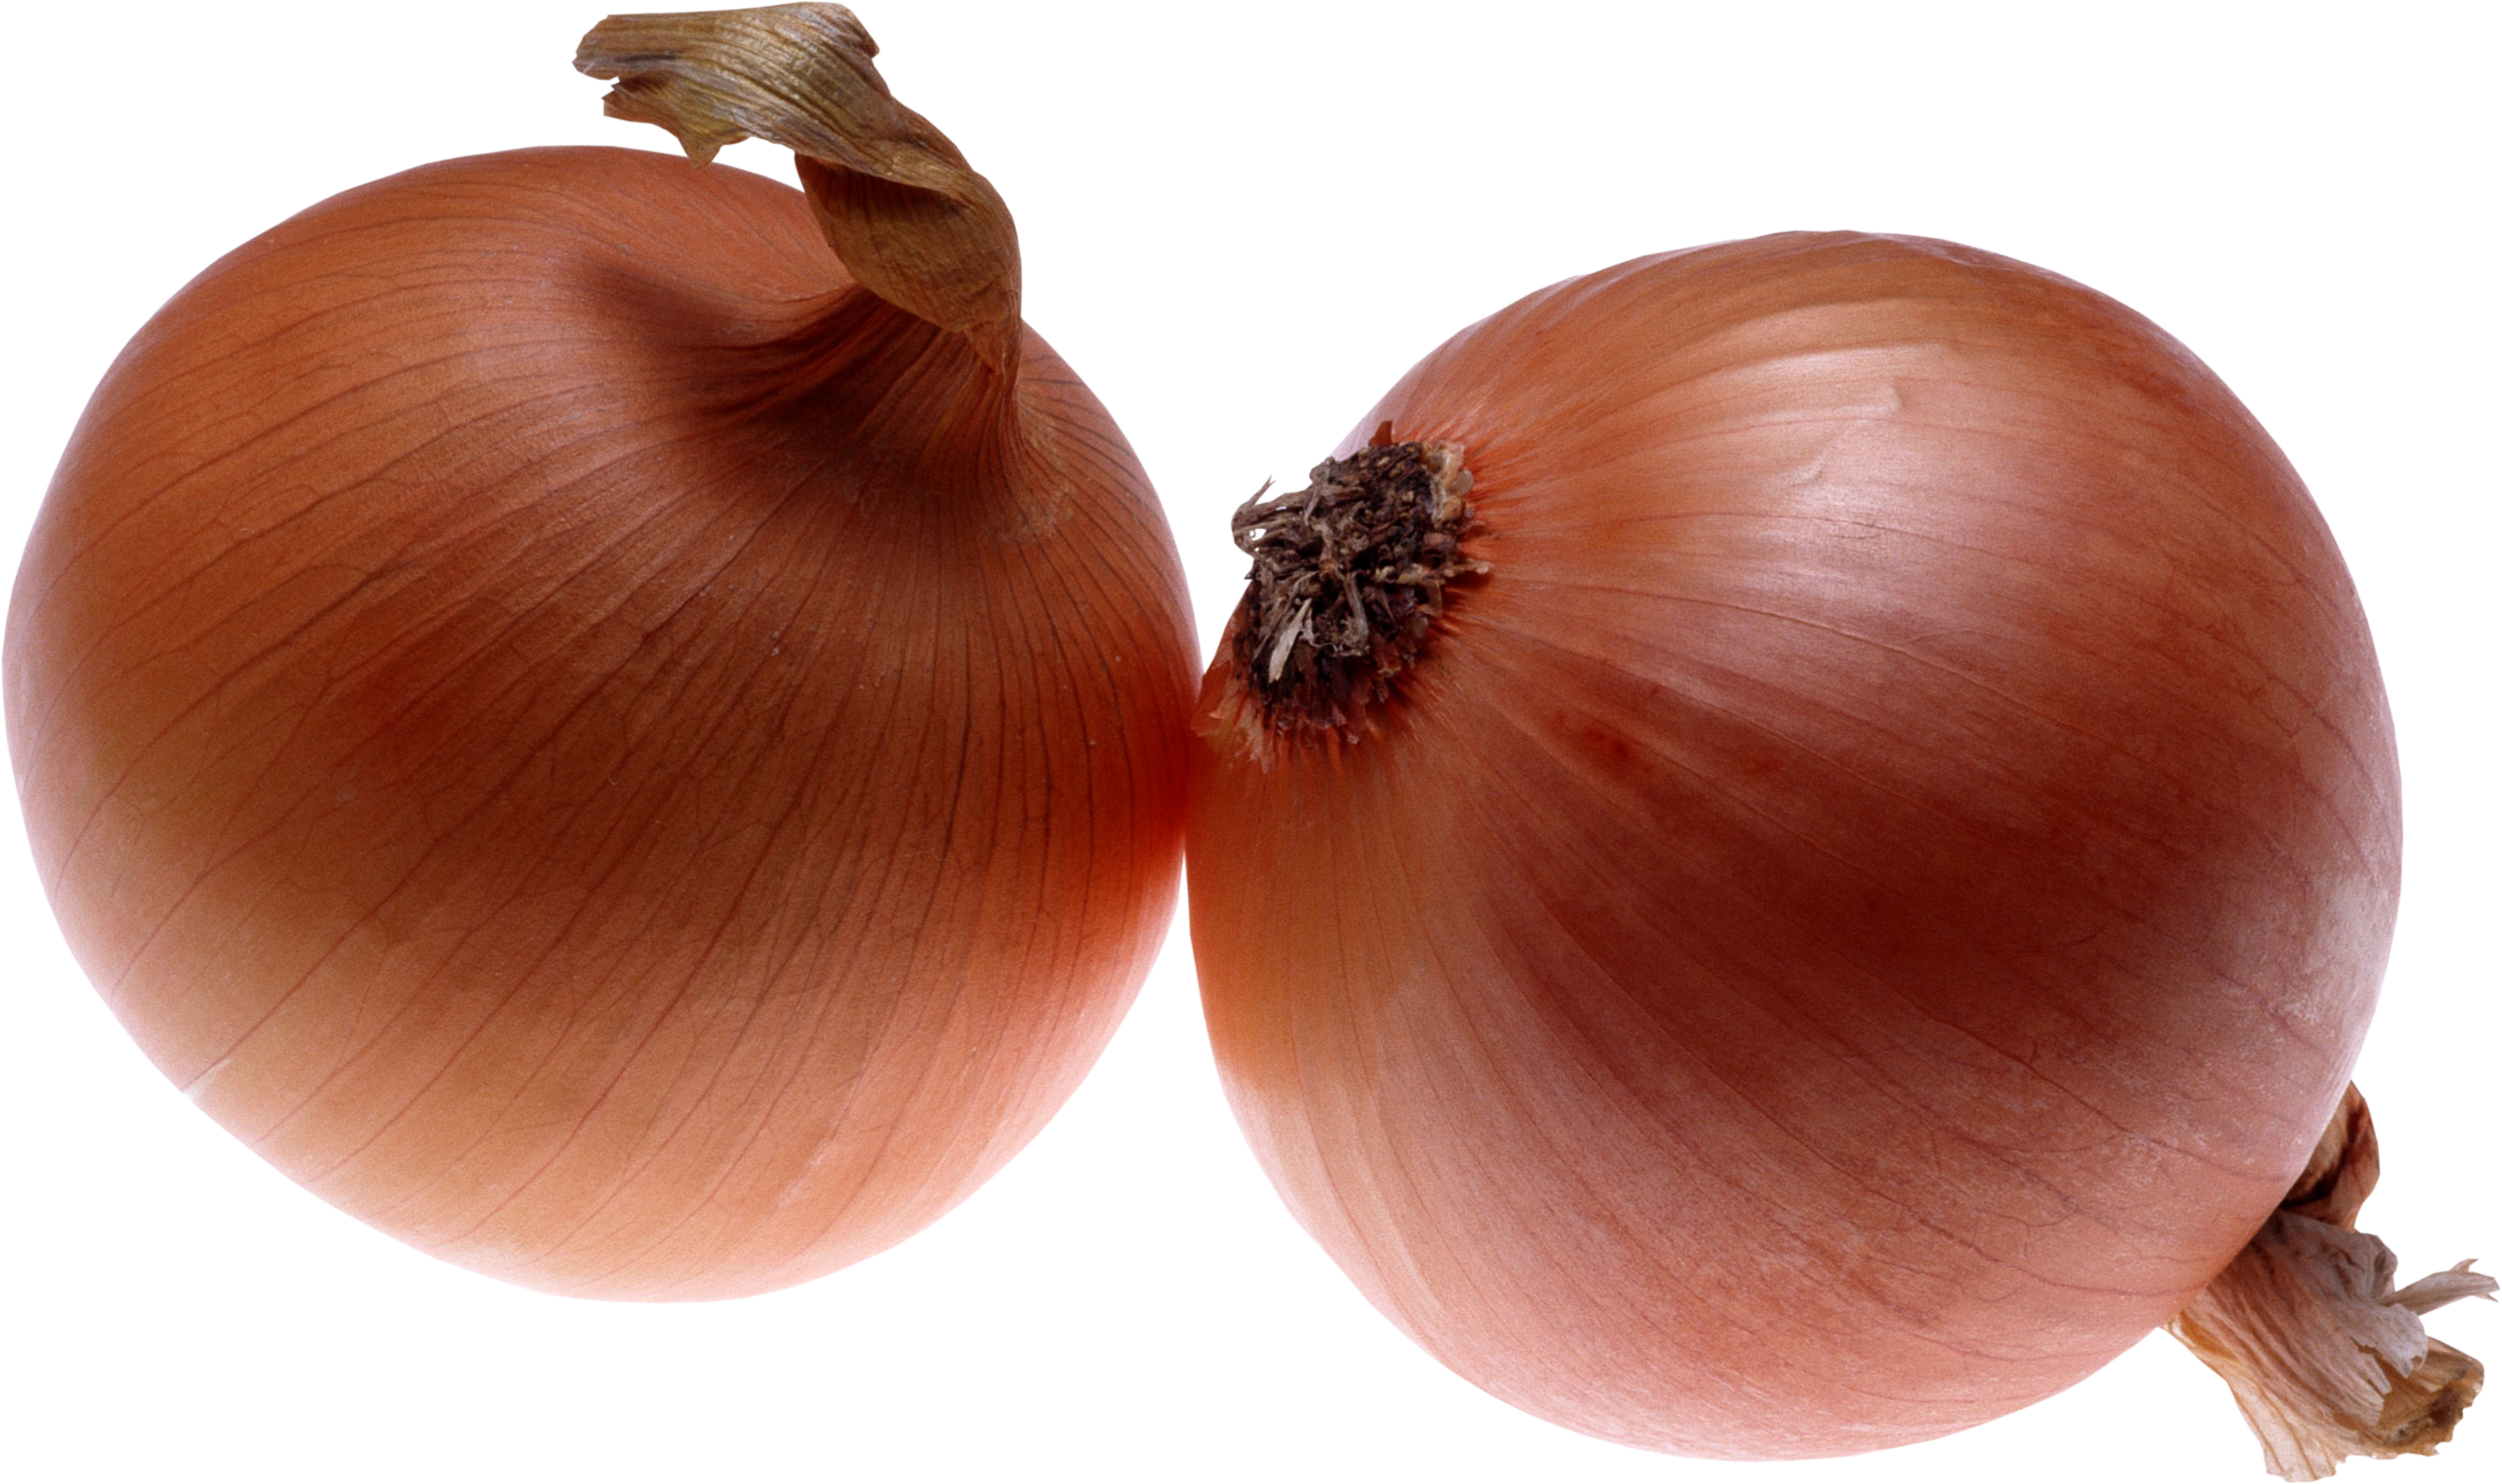 Onion clipart red onion. Png images free download